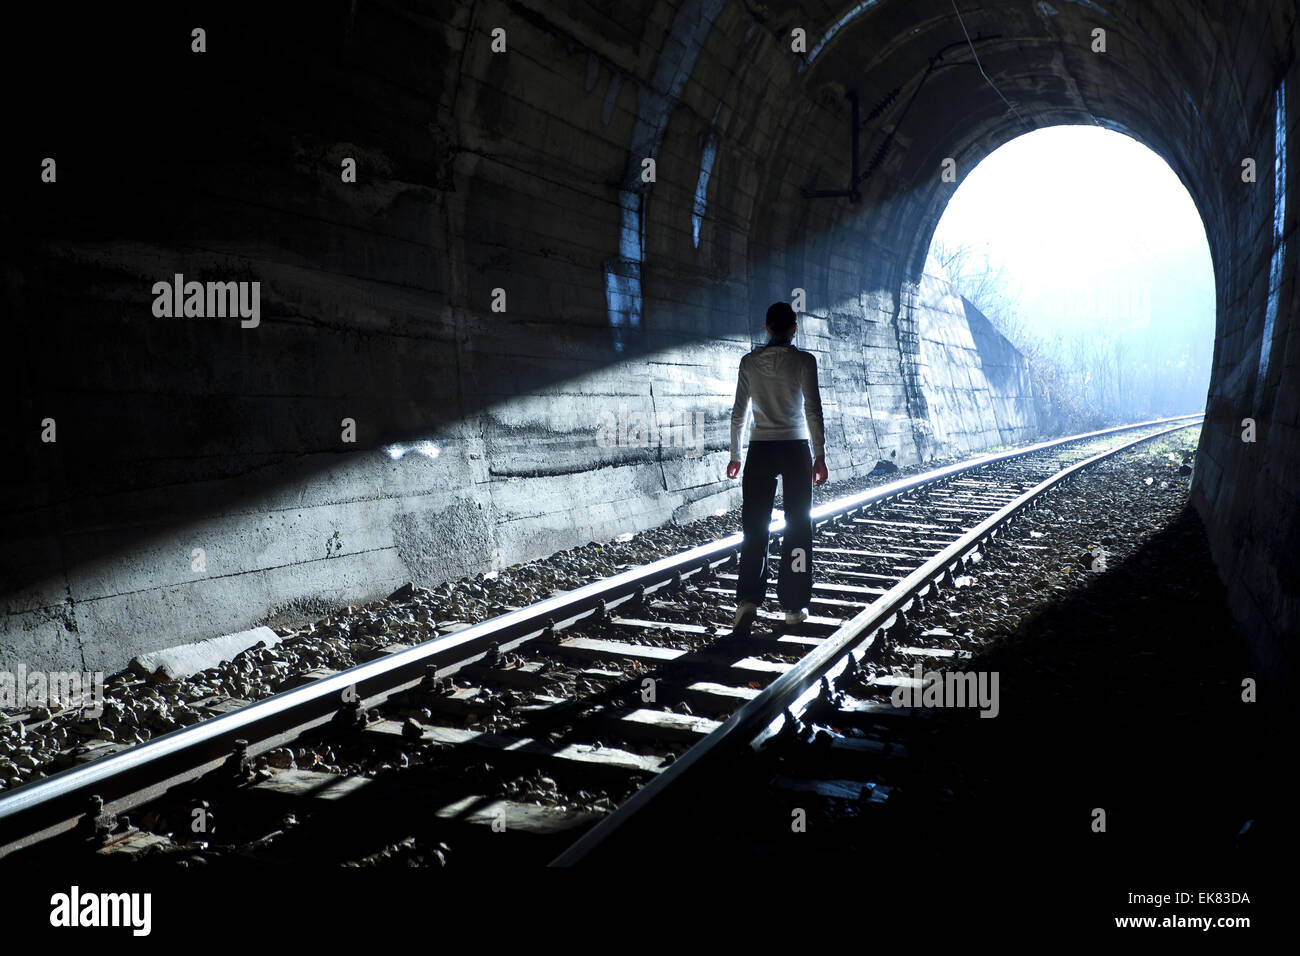 Fin du Tunnel Photo Stock